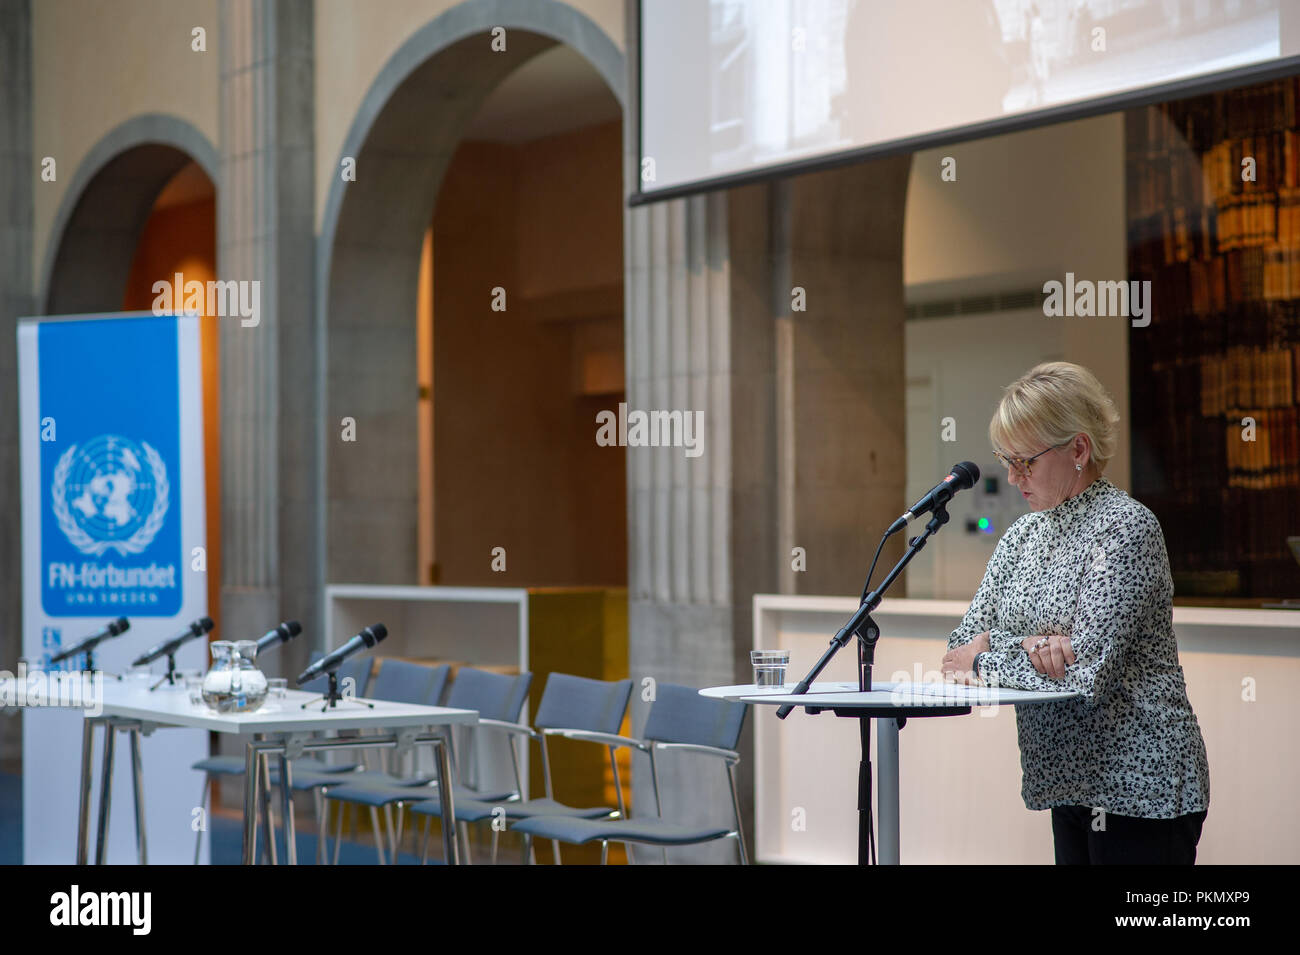 Stockholm, Sweden, September 14, 2018. Seminar about Agda Rössel (1910-2001) Sweden's and the world's first female UN ambassador. Introductory words by Foreign Minister Margot Wallström.The seminar is held at the Ministry of Foreign Affairs.  Credit: Barbro Bergfeldt/Alamy Live News Stock Photo